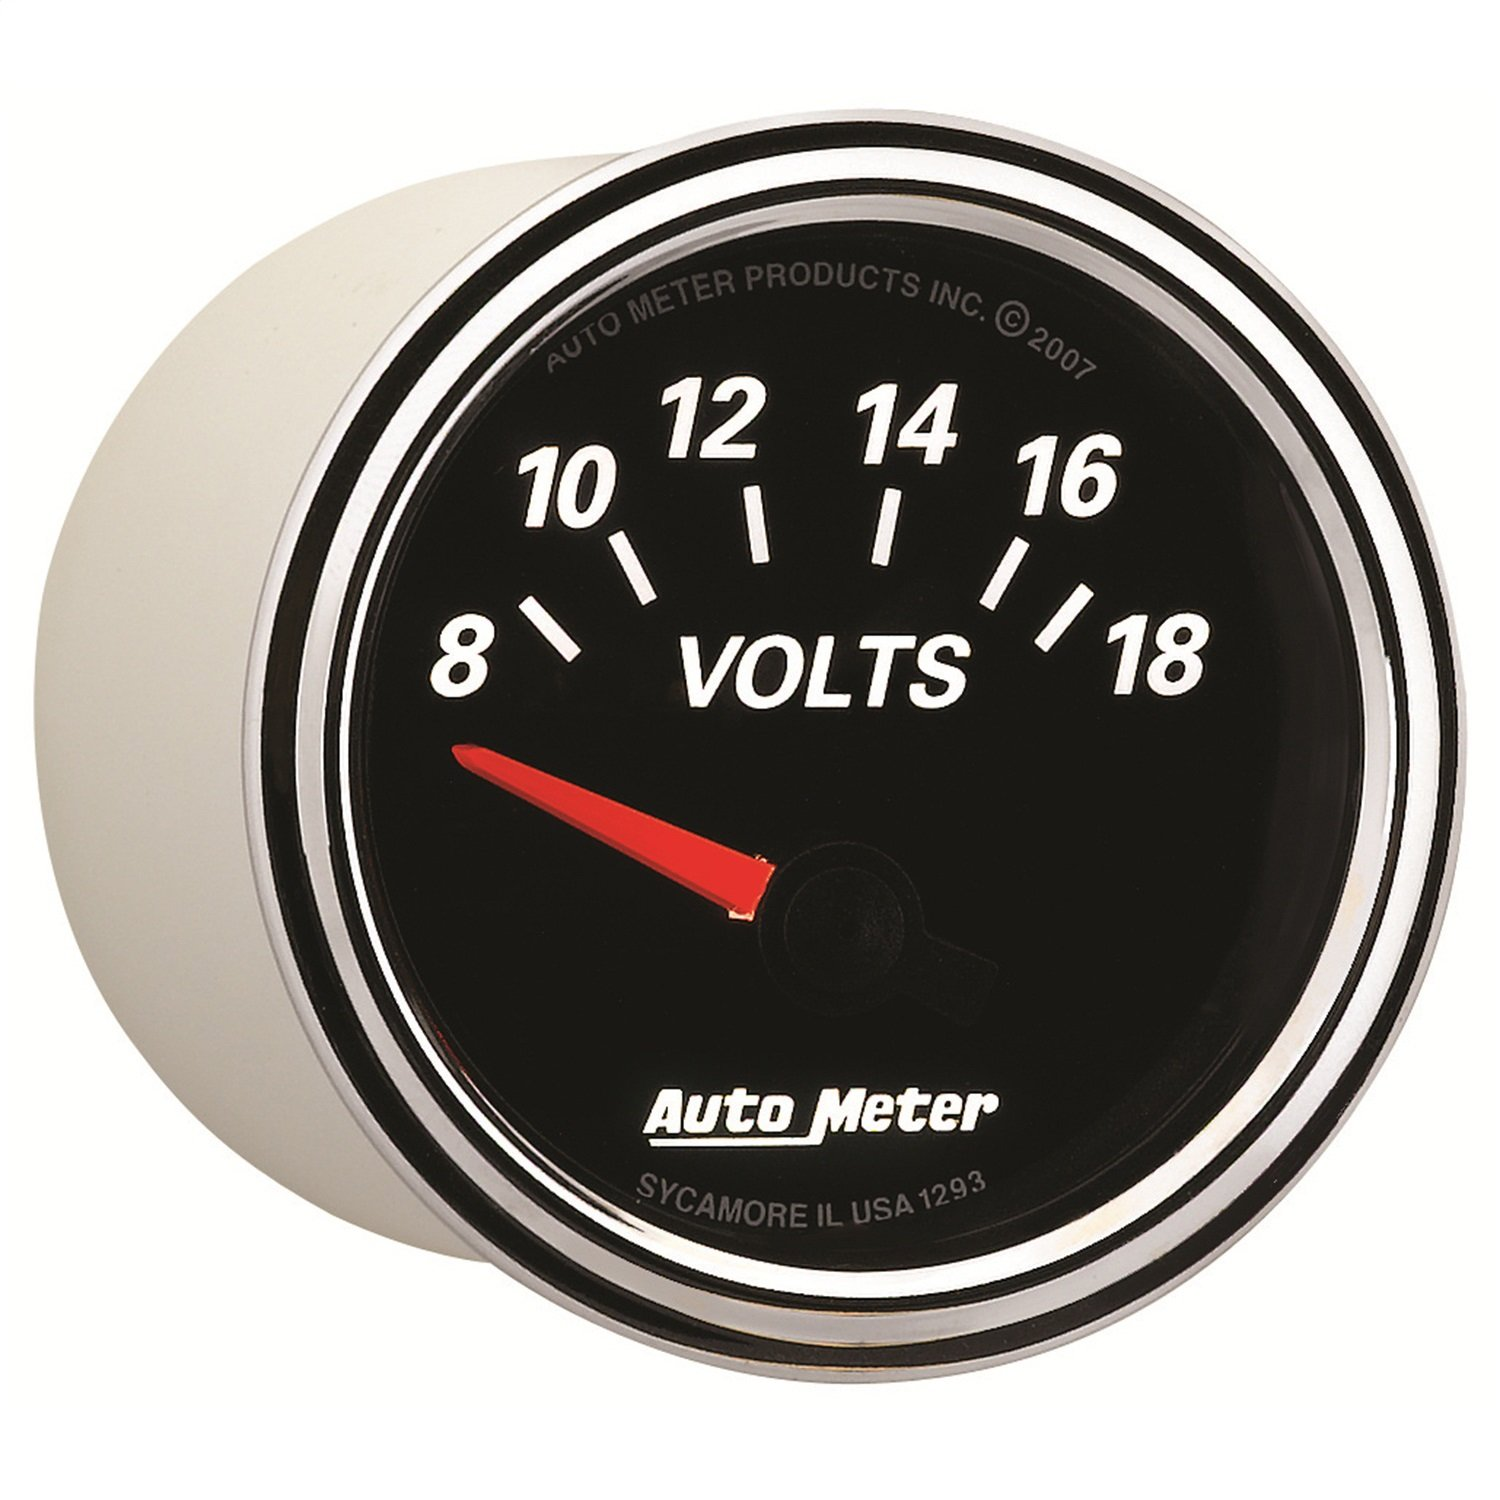 Auto Meter 1293 Designer Black II 2-1/16'' 8-18 Volt Short Sweep Electric Voltmeter Gauge by AUTO METER